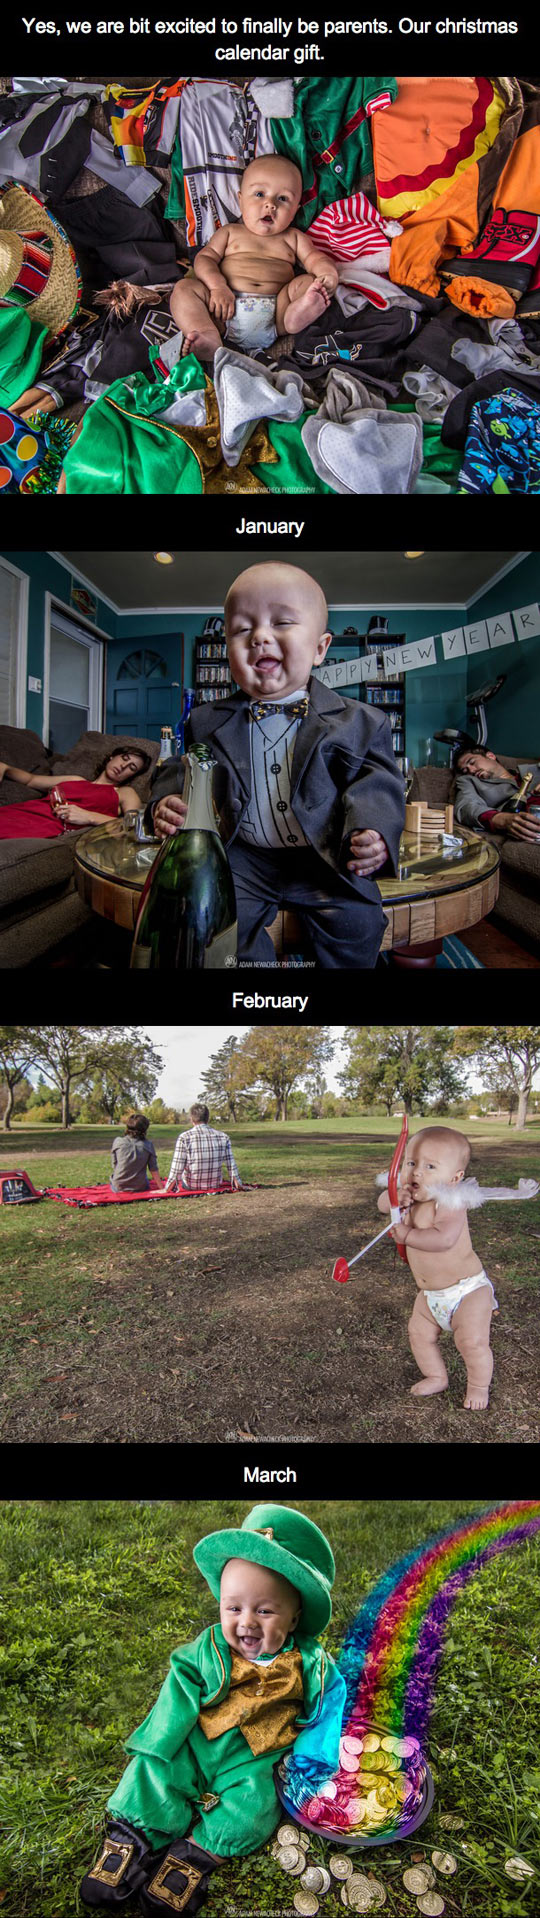 funny-baby-calendar-parents-photography